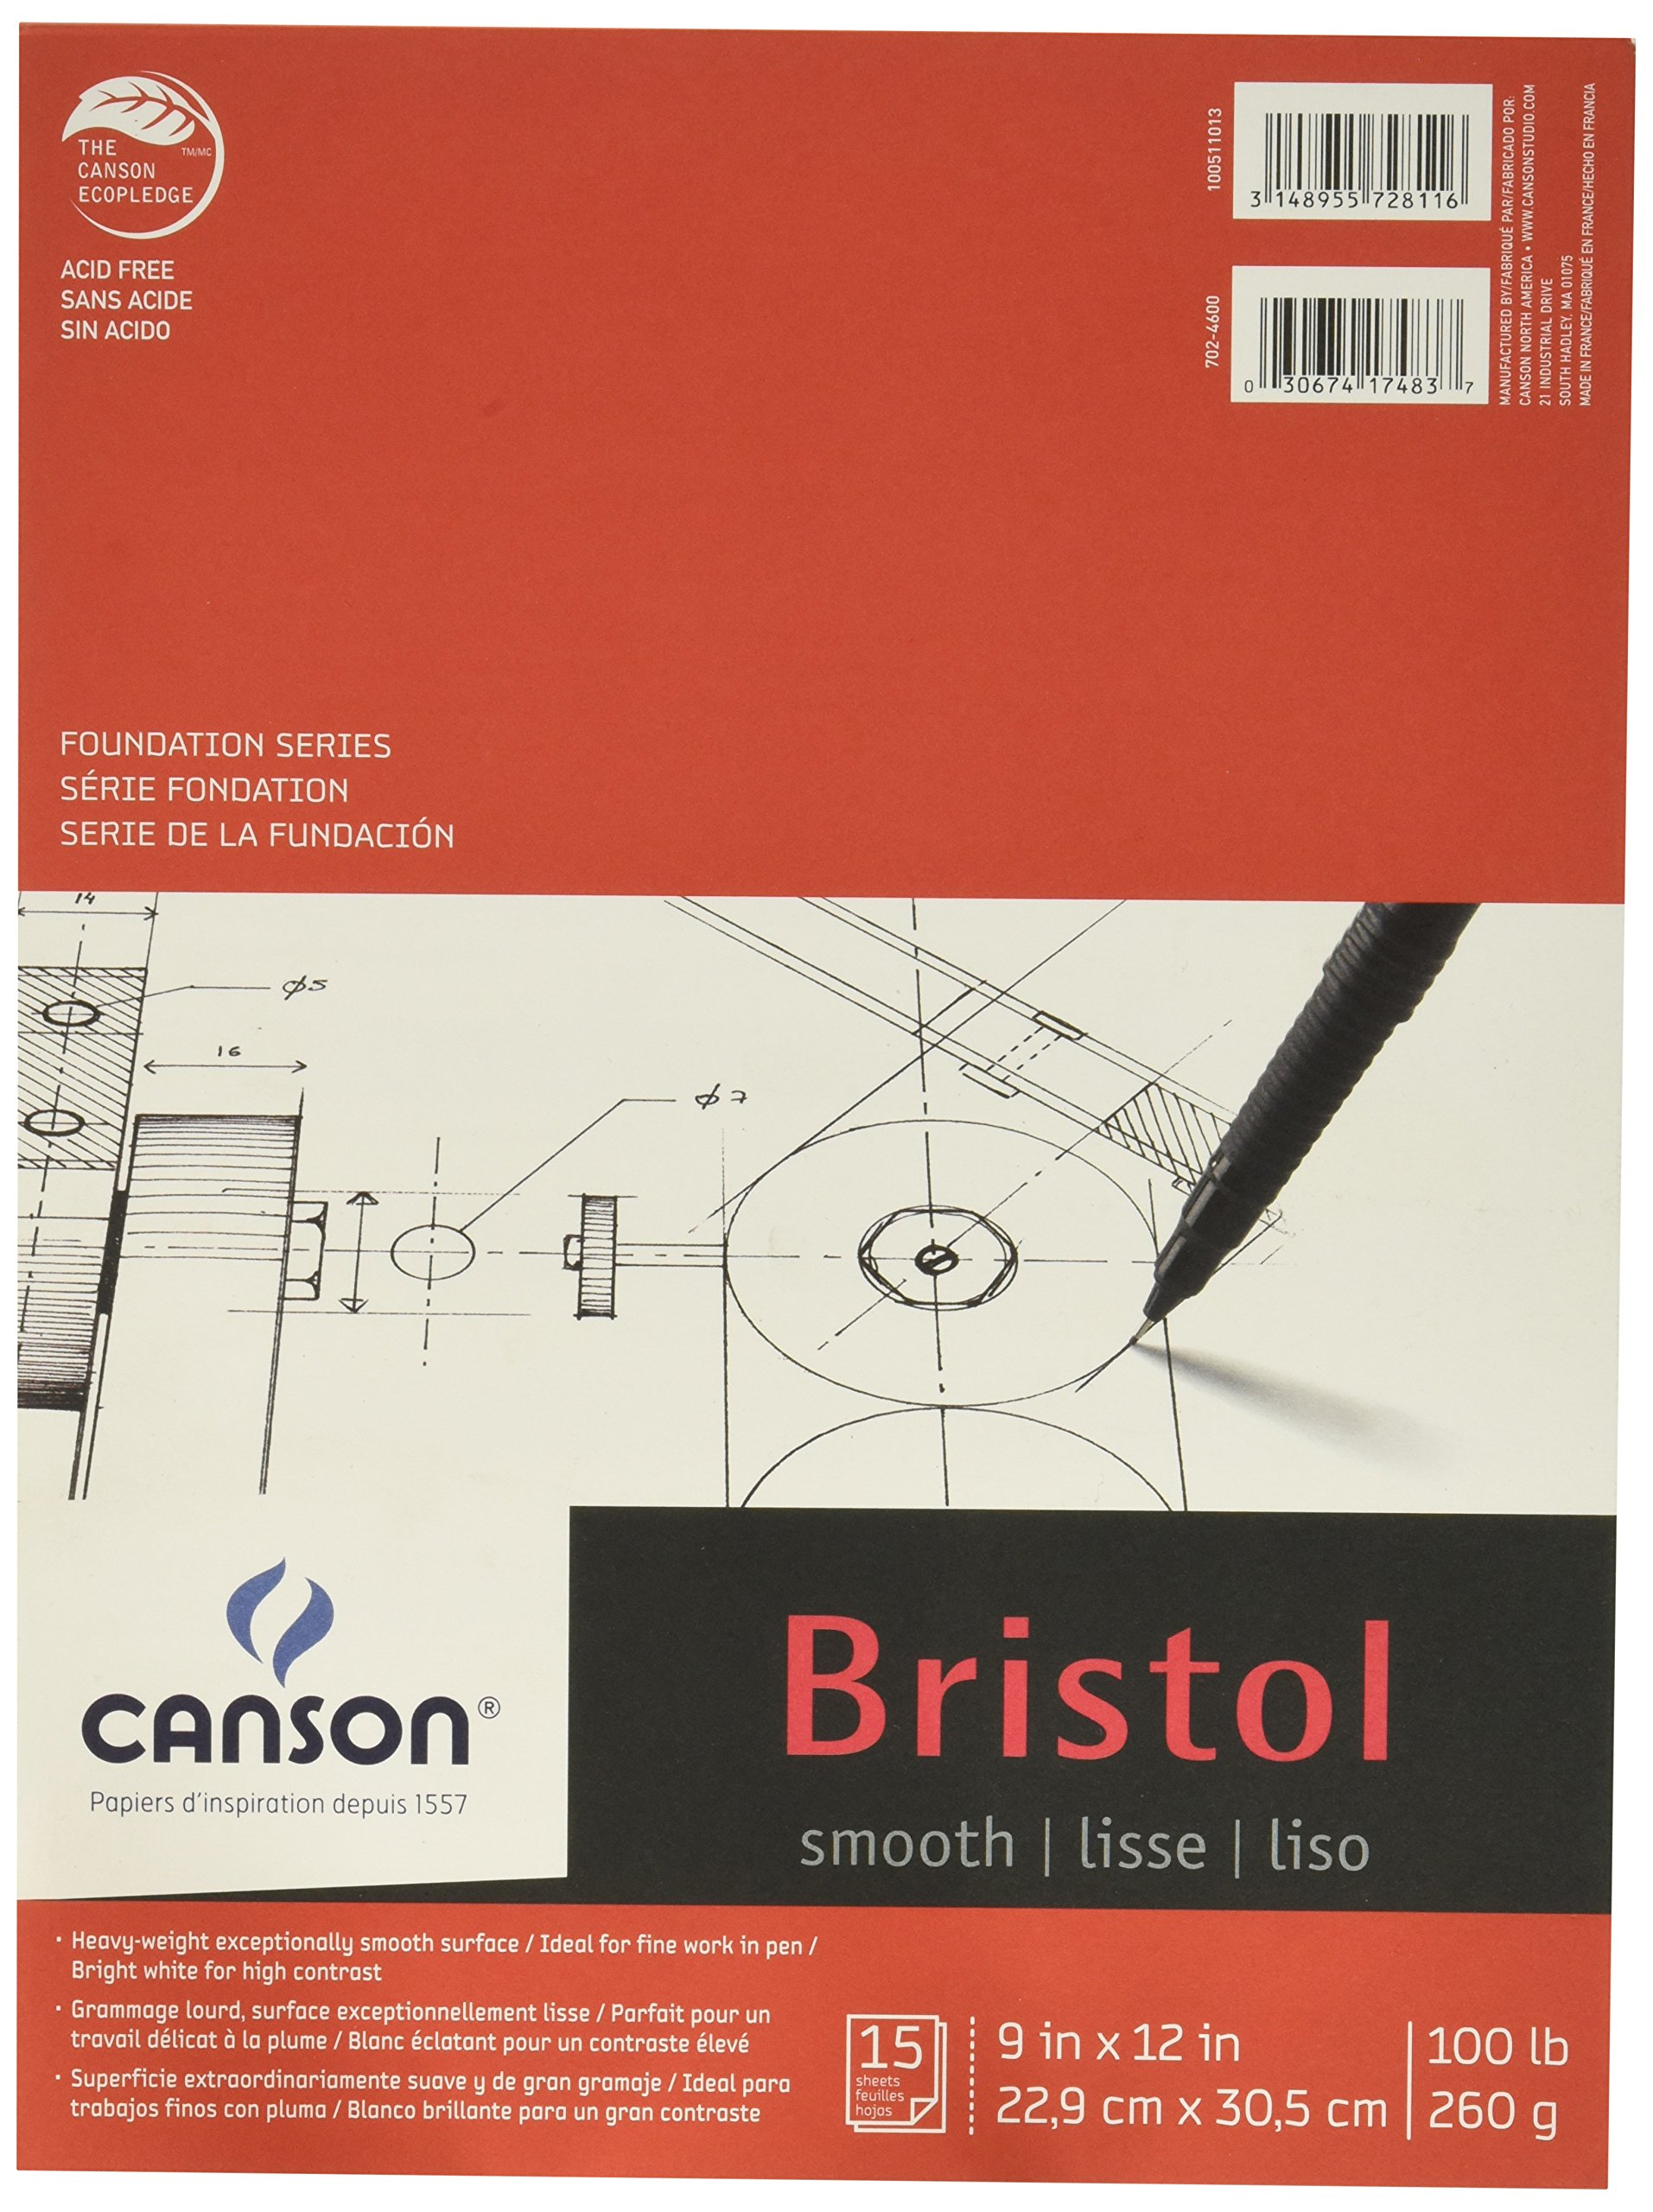 Canson Foundation Series Bristol Paper Pad, Heavyweight Paper for Pencil, Vellum Finish, Fold Over, 100 Pound, 19 x 24 Inch, Bright White, 15 Sheets